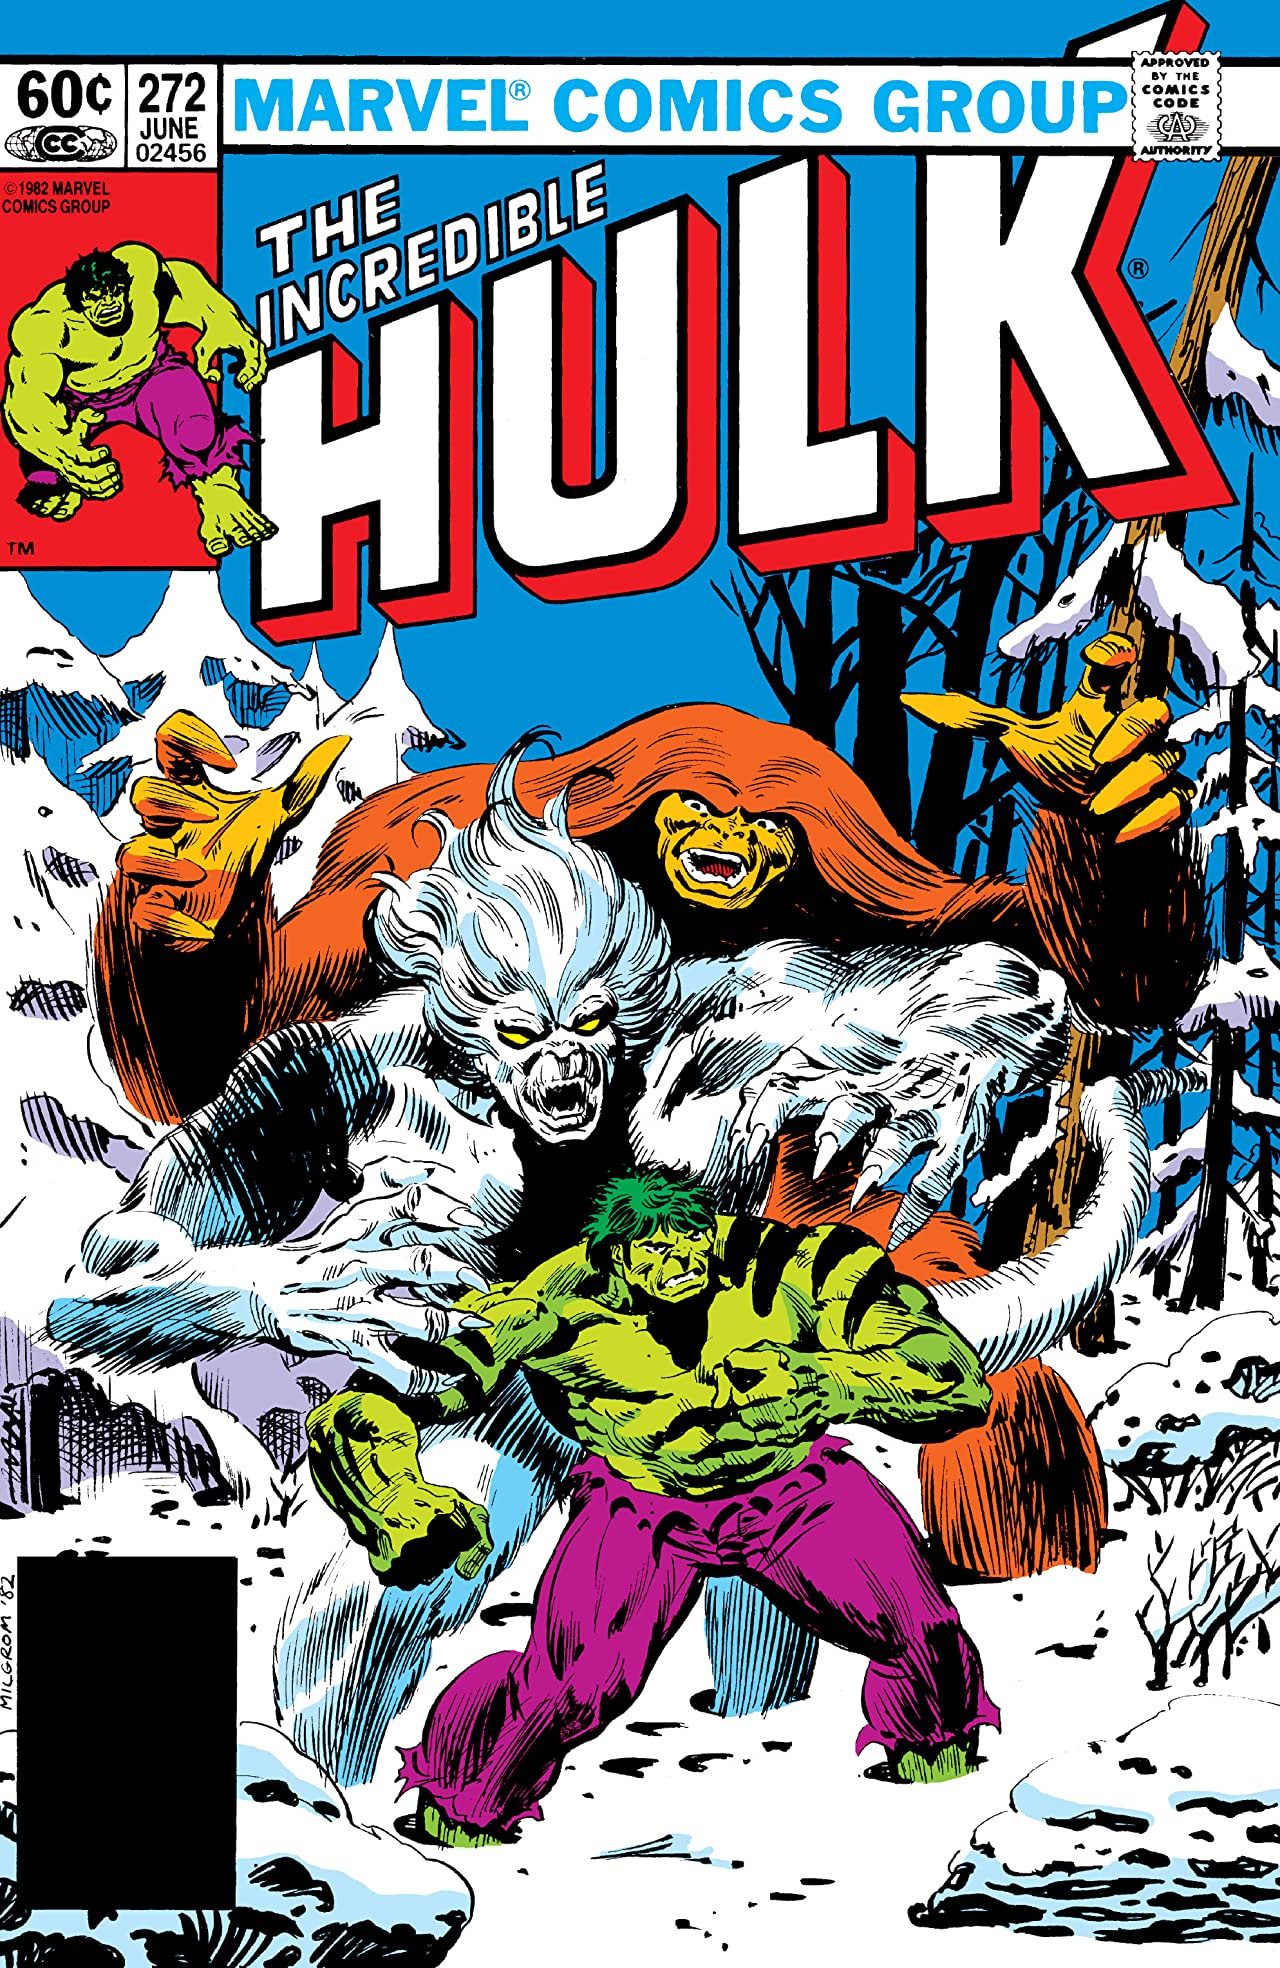 Incredible Hulk Vol 1 272